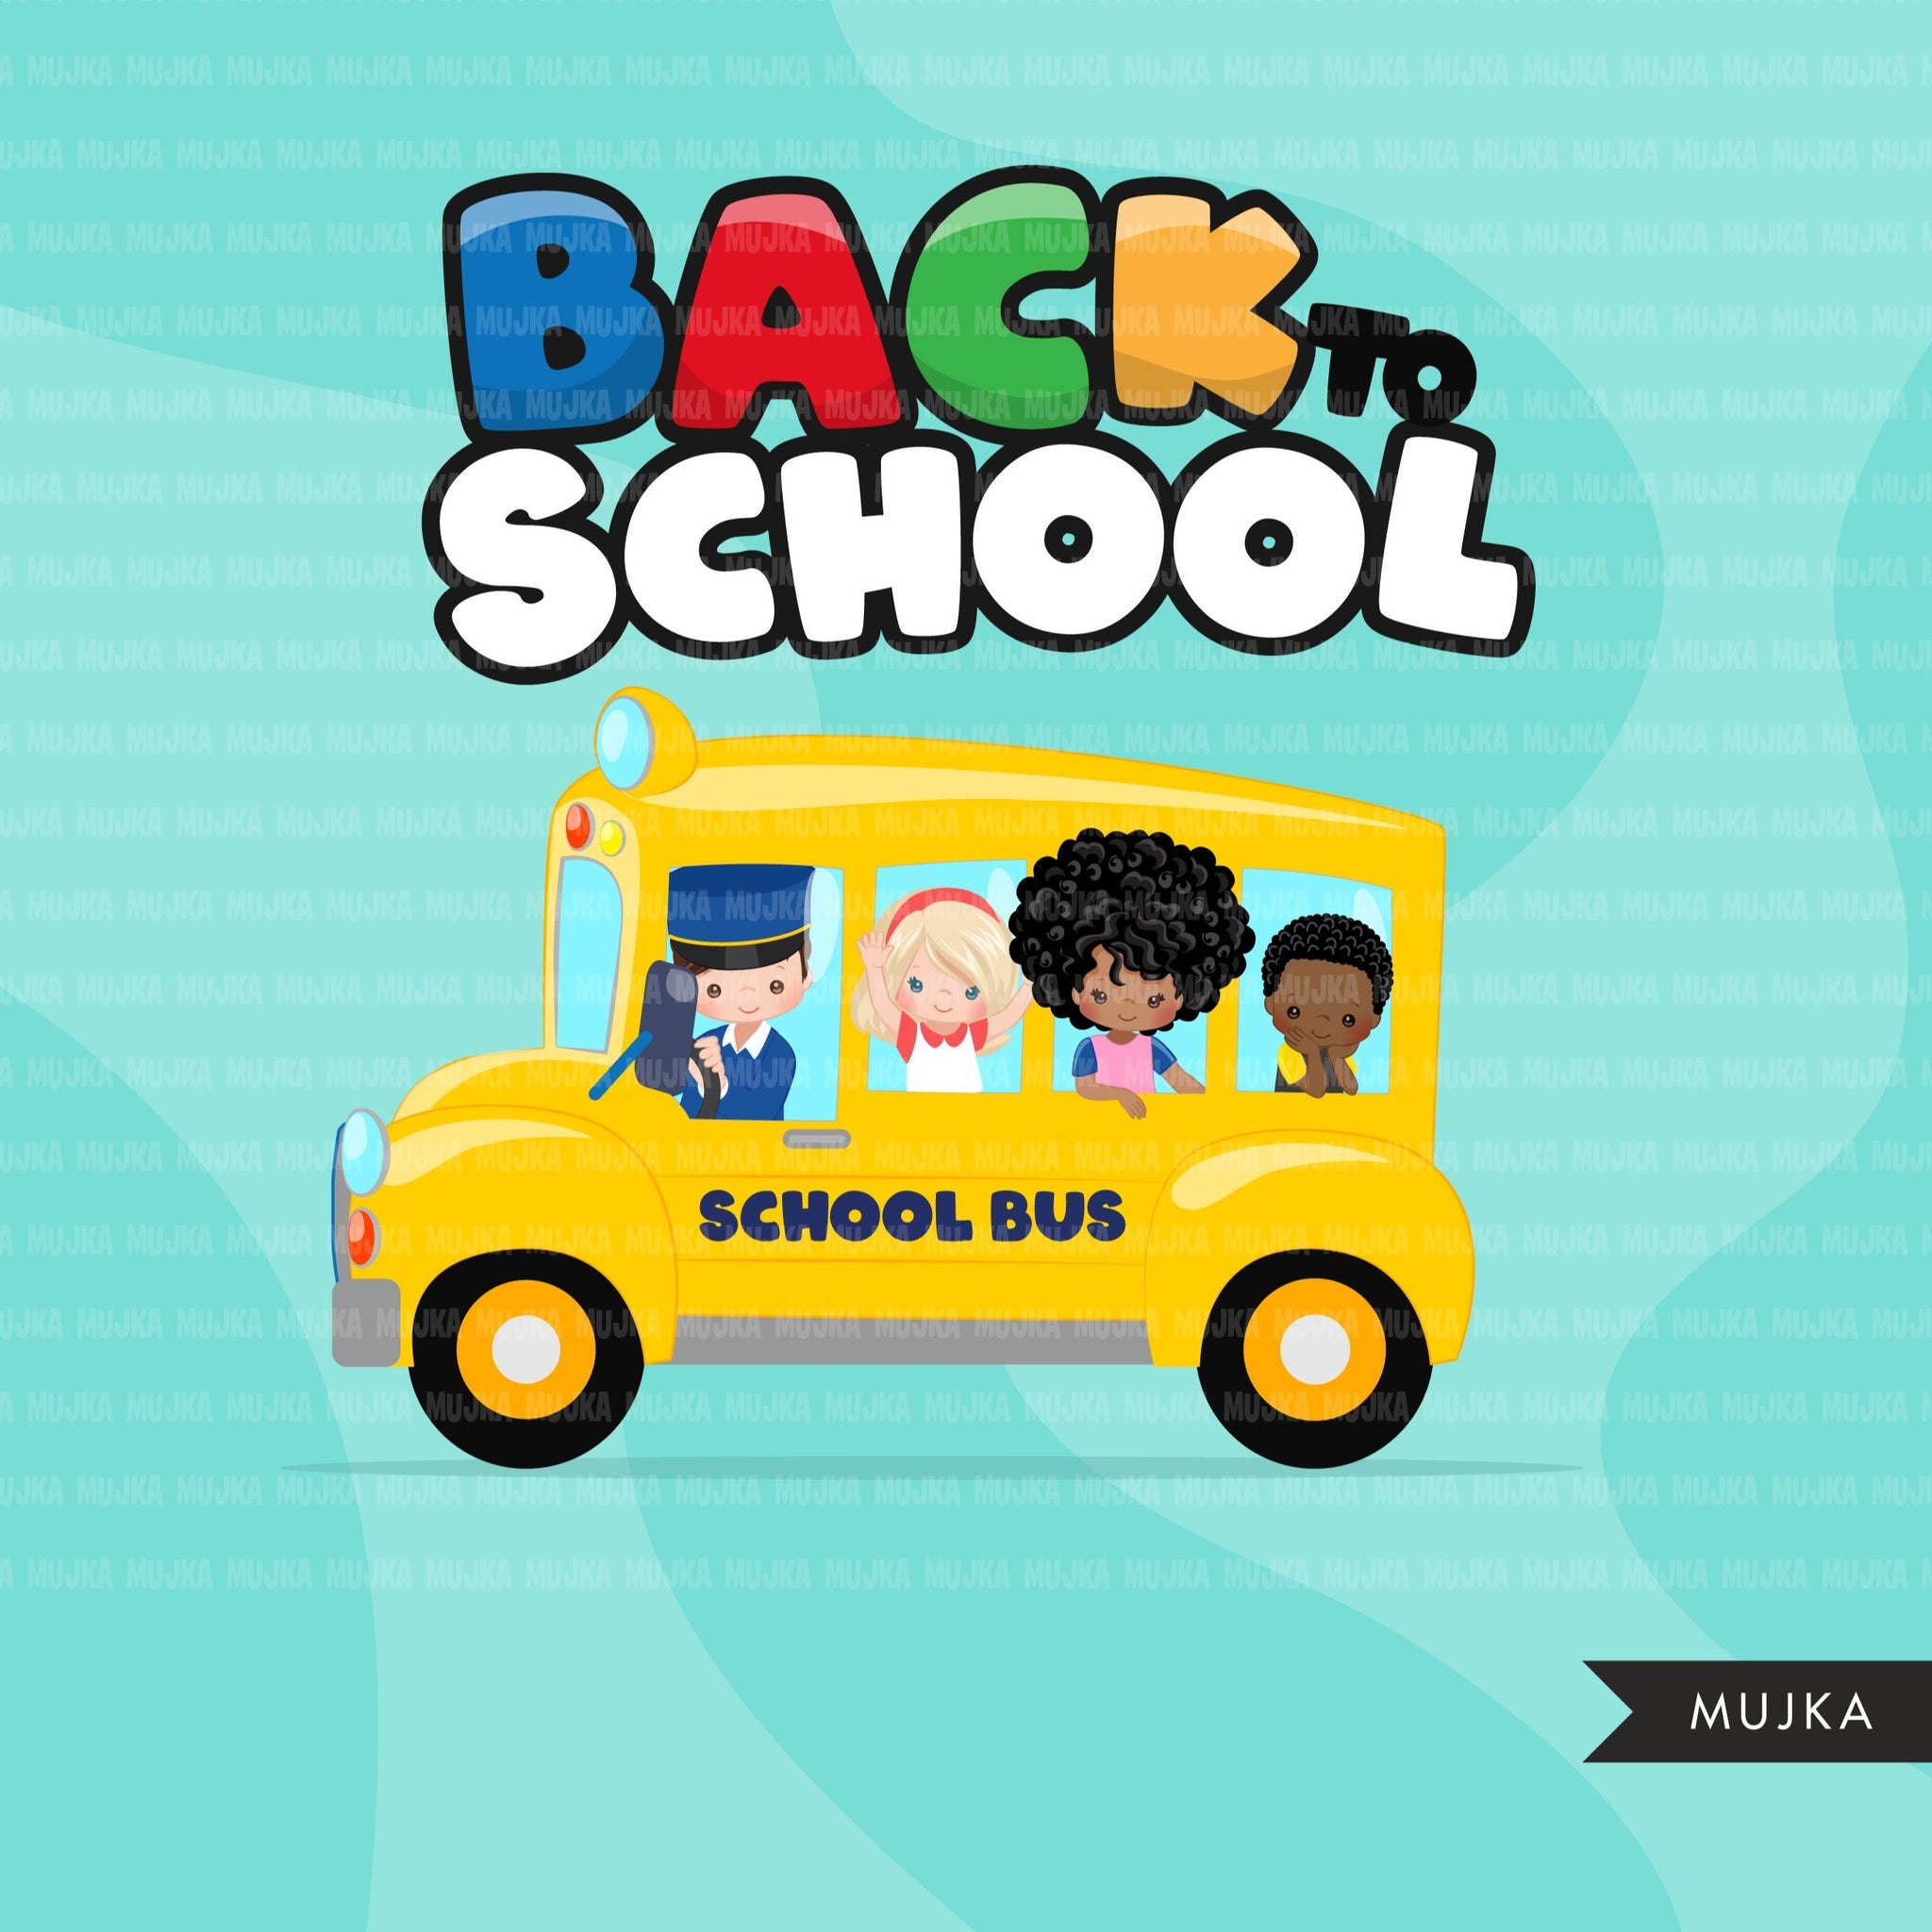 Back to school Clipart, school bus clip art, students, boy, girl with face mask, bus driver, education sublimation graphics, PNG clip art